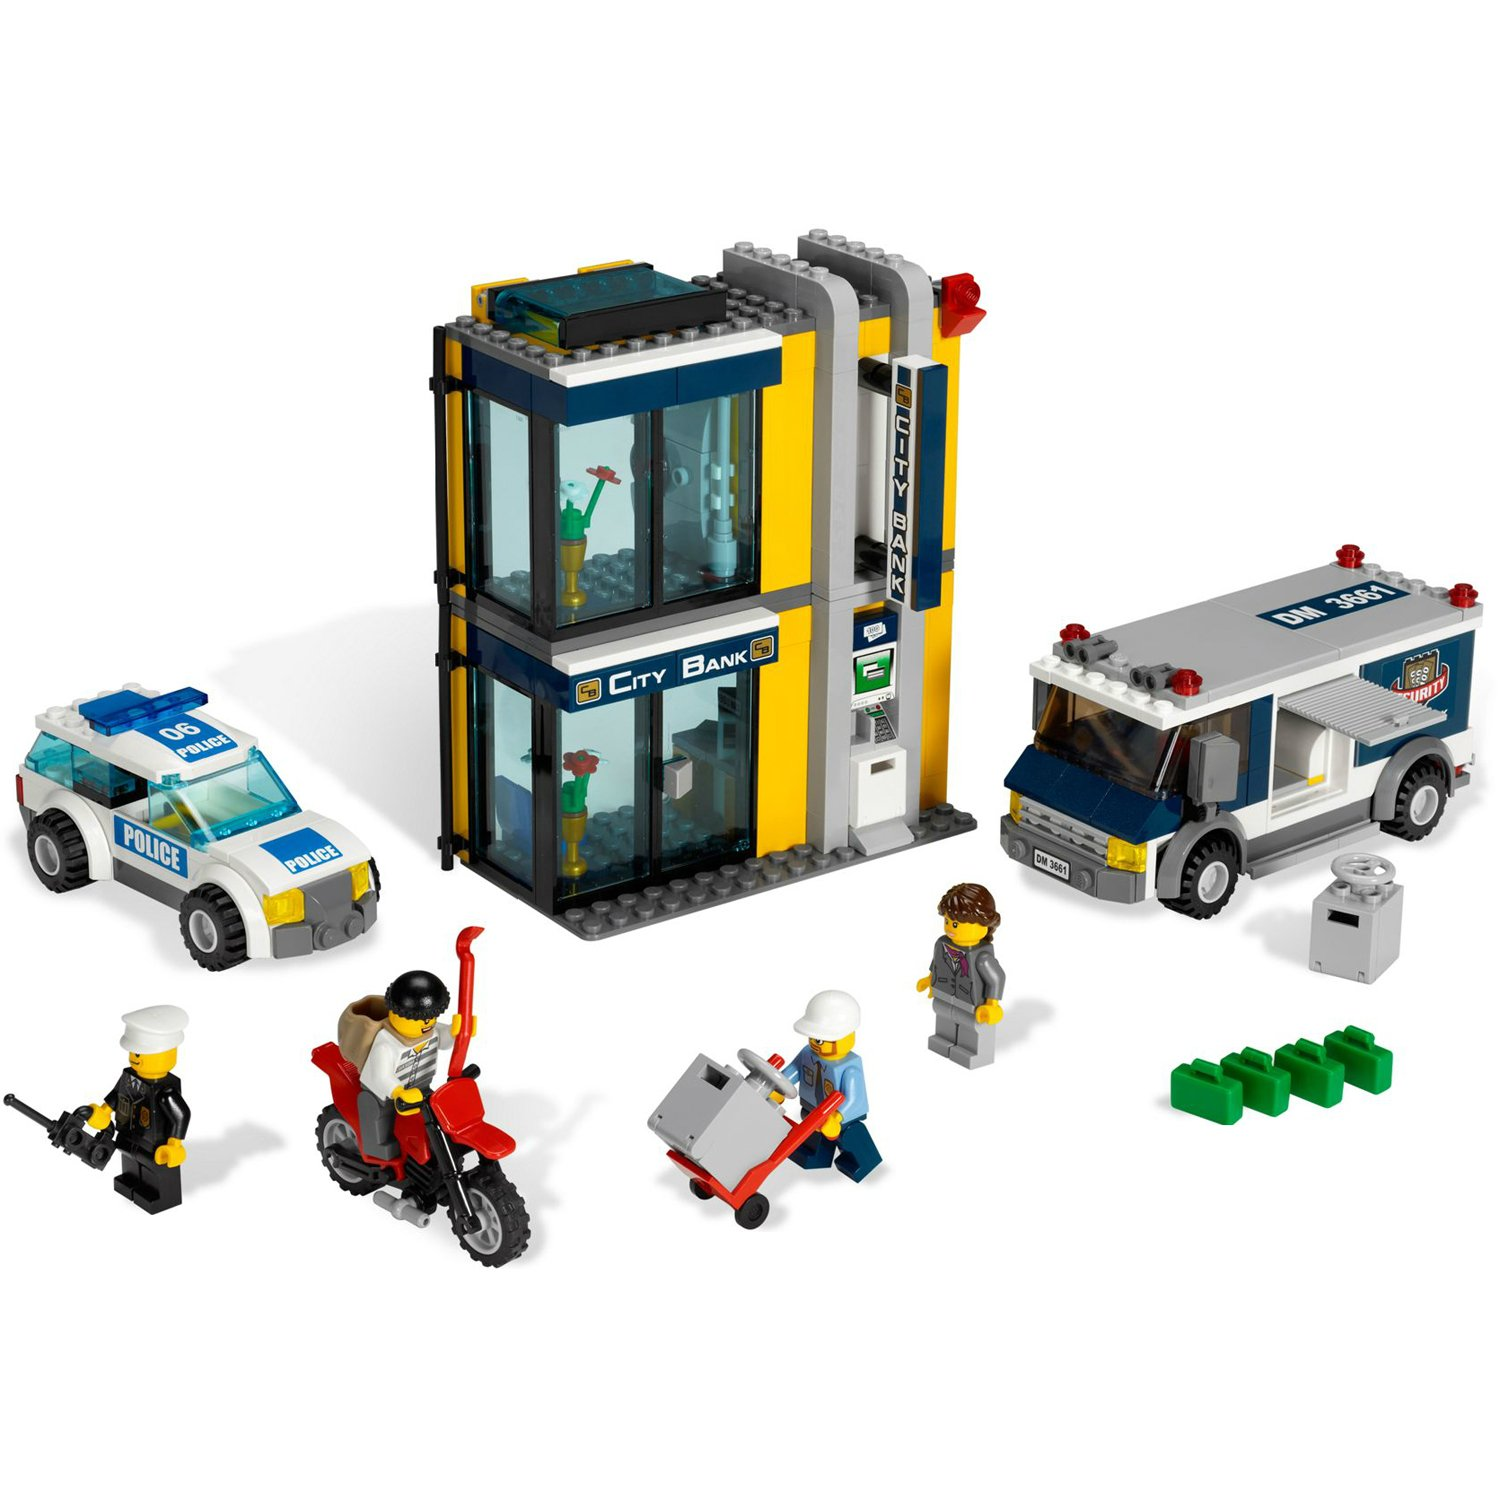 Amazoncom Lego City Police Bank Money Transfer 3661 Toys Games